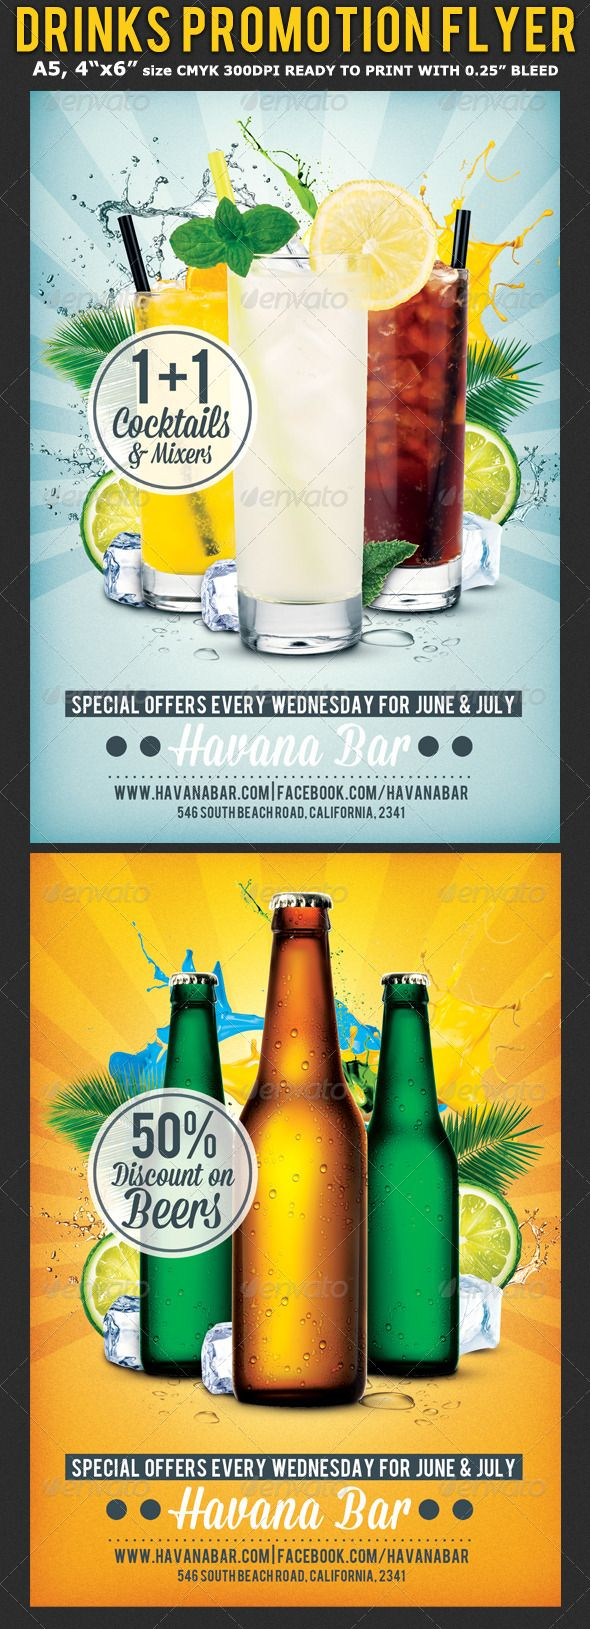 Drinks Promotion Advertising Flyer Template  Advertising Flyers